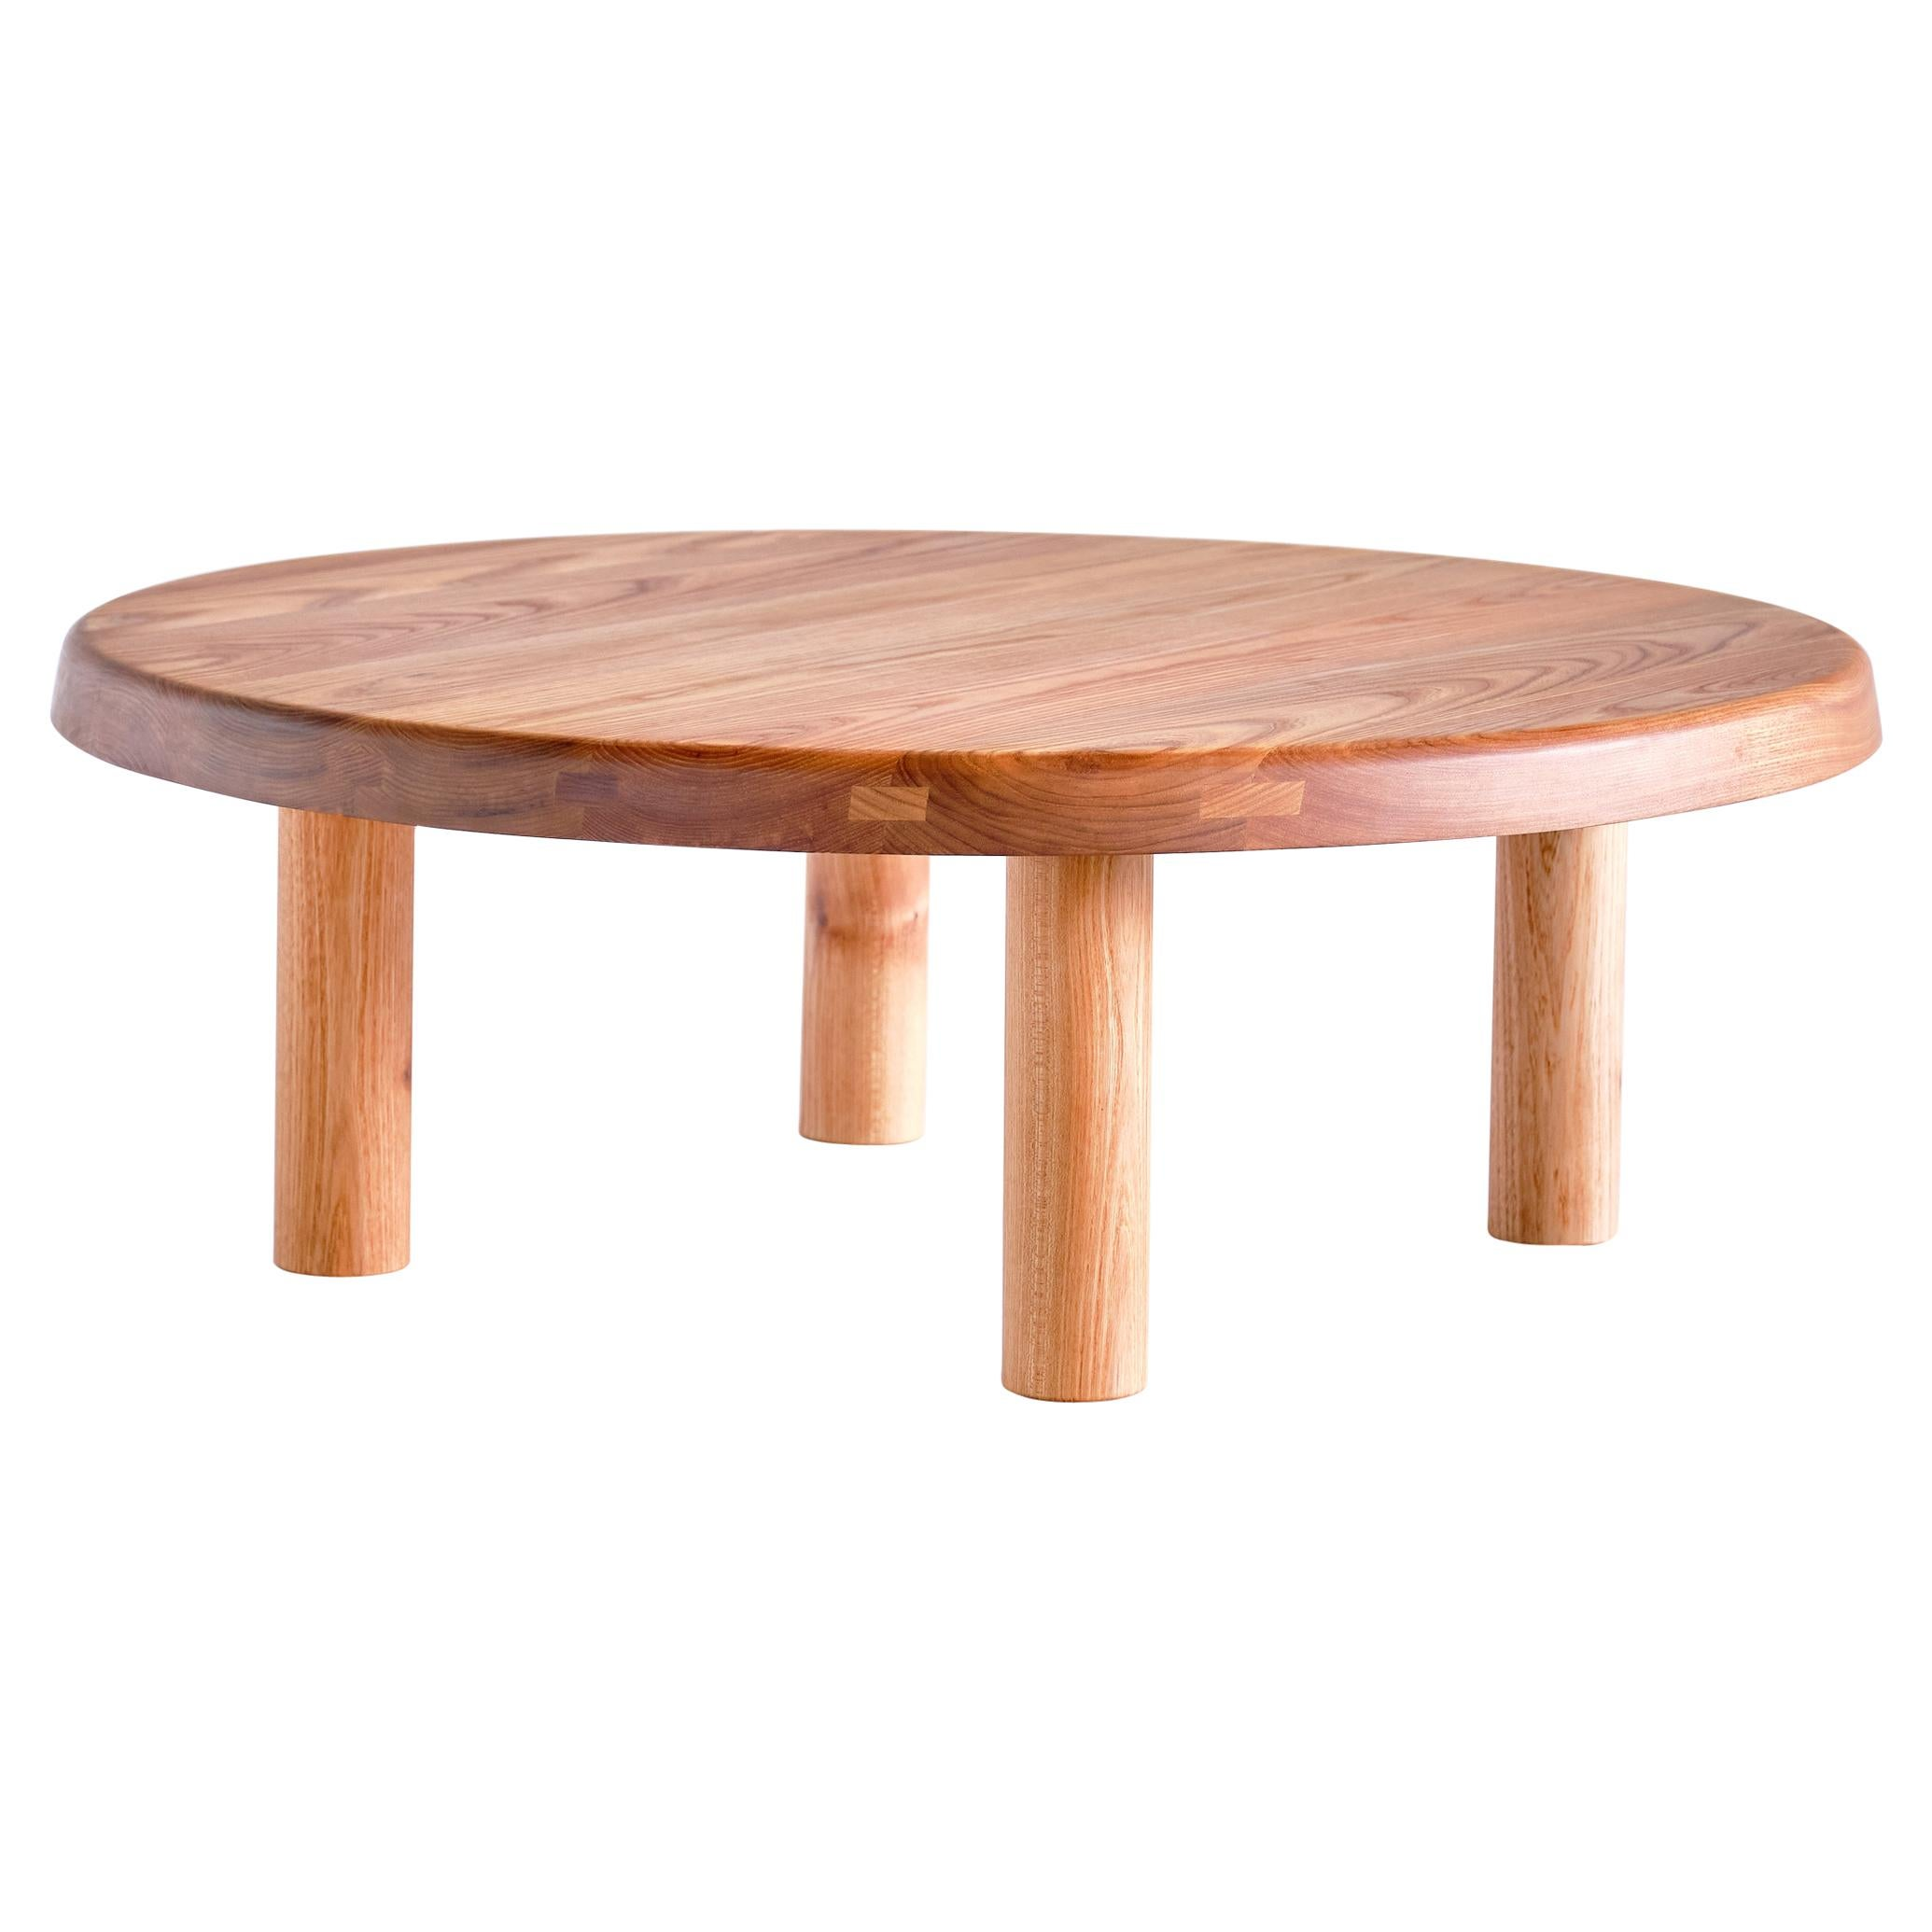 Pierre Chapo T02M Coffee Table in Solid Elm, Chapo Creation, France